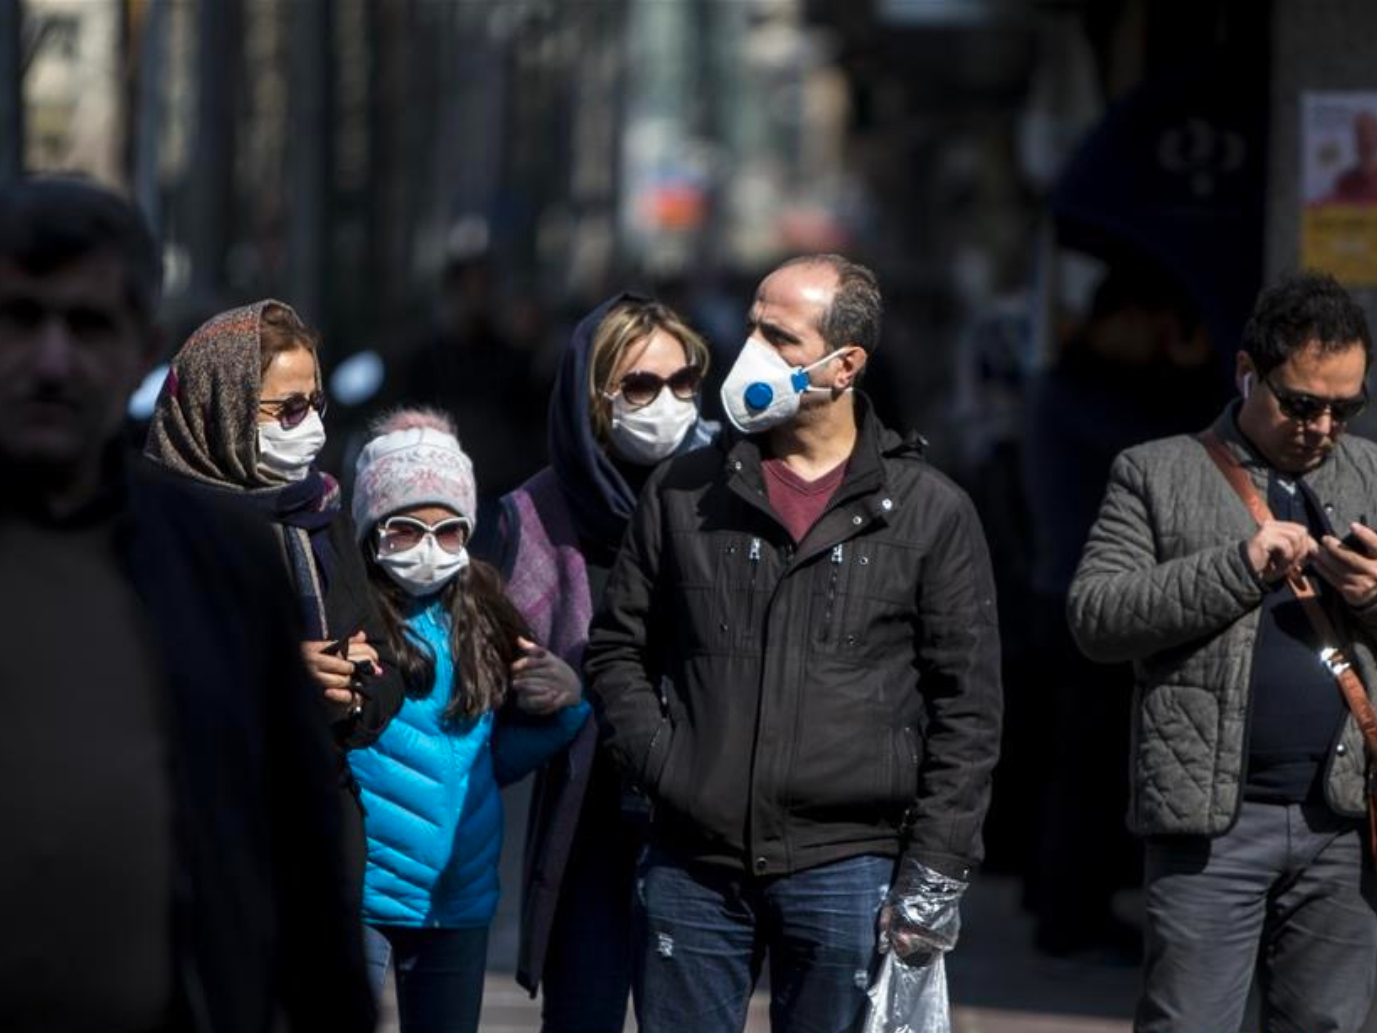 Iran reports 1,053 more cases of COVID-19, total at 14,991